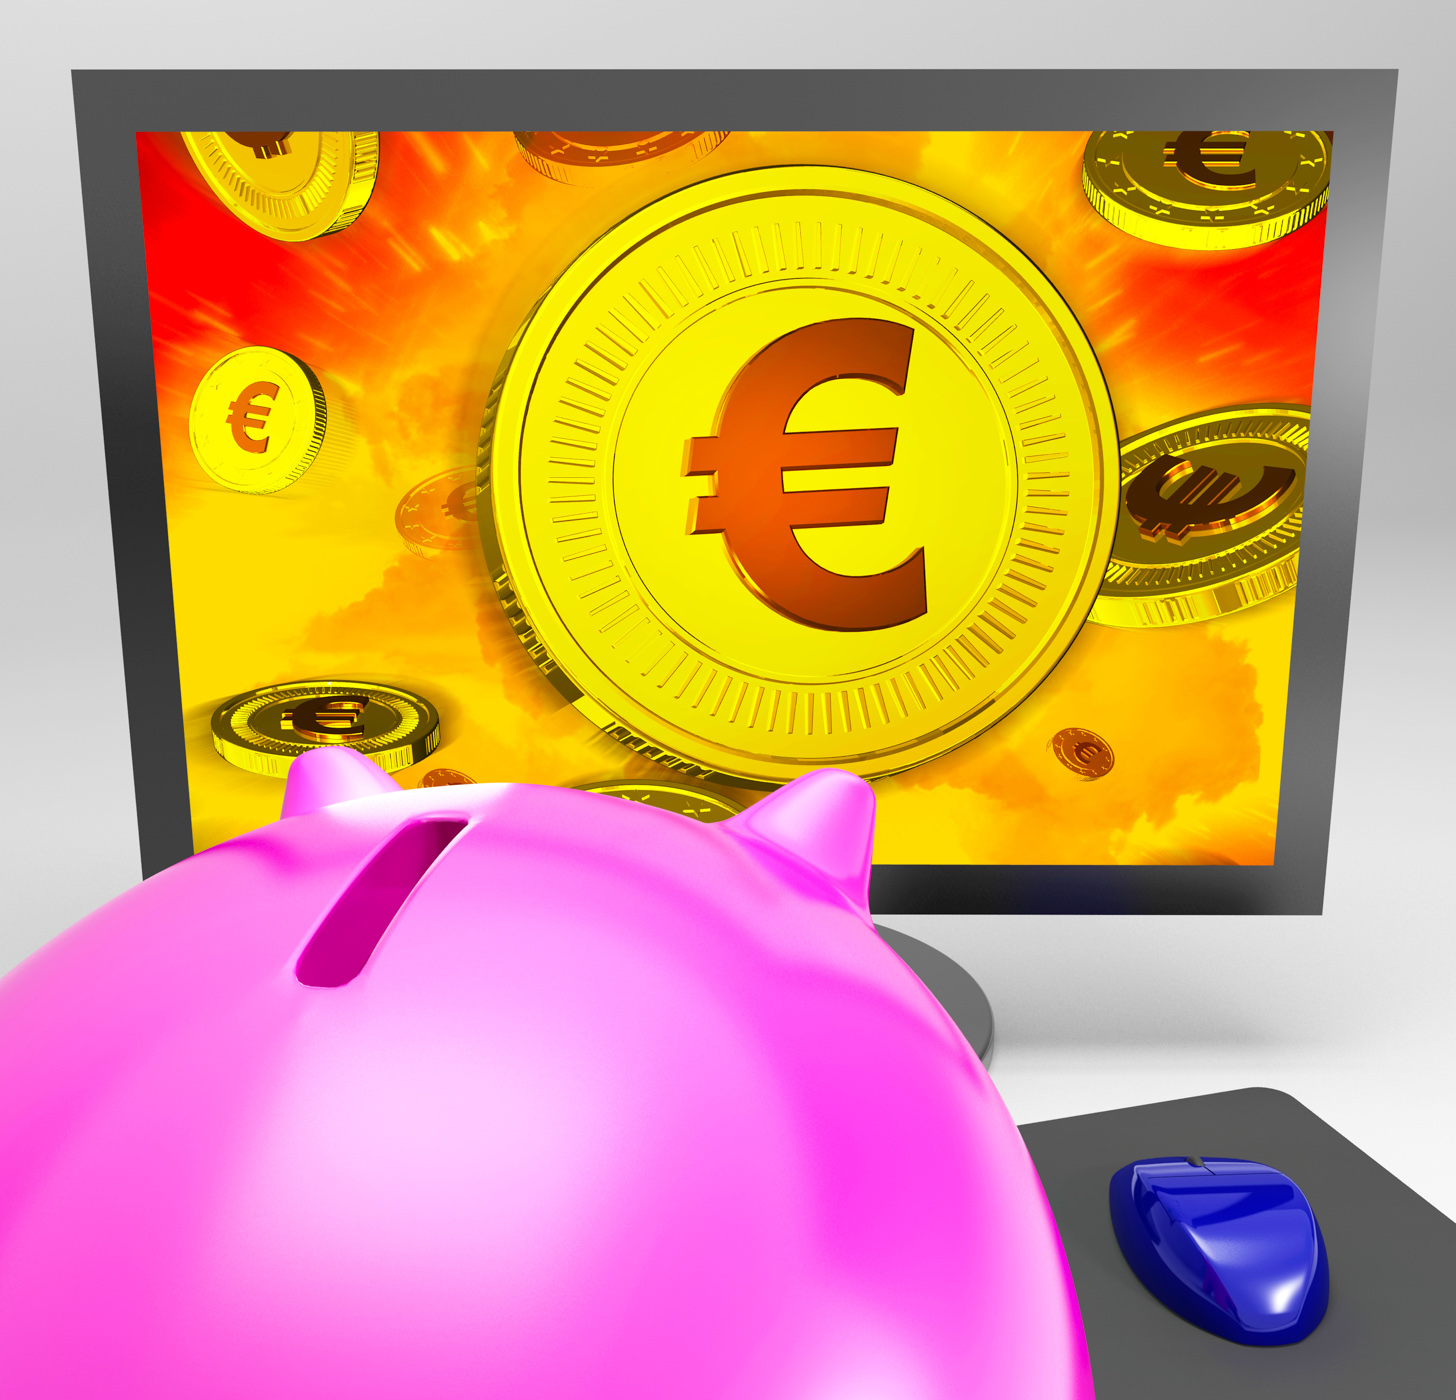 Euro Coin Shows Finance Wealth And Savings, Financing, Screen, Savings, Piggybank, HQ Photo